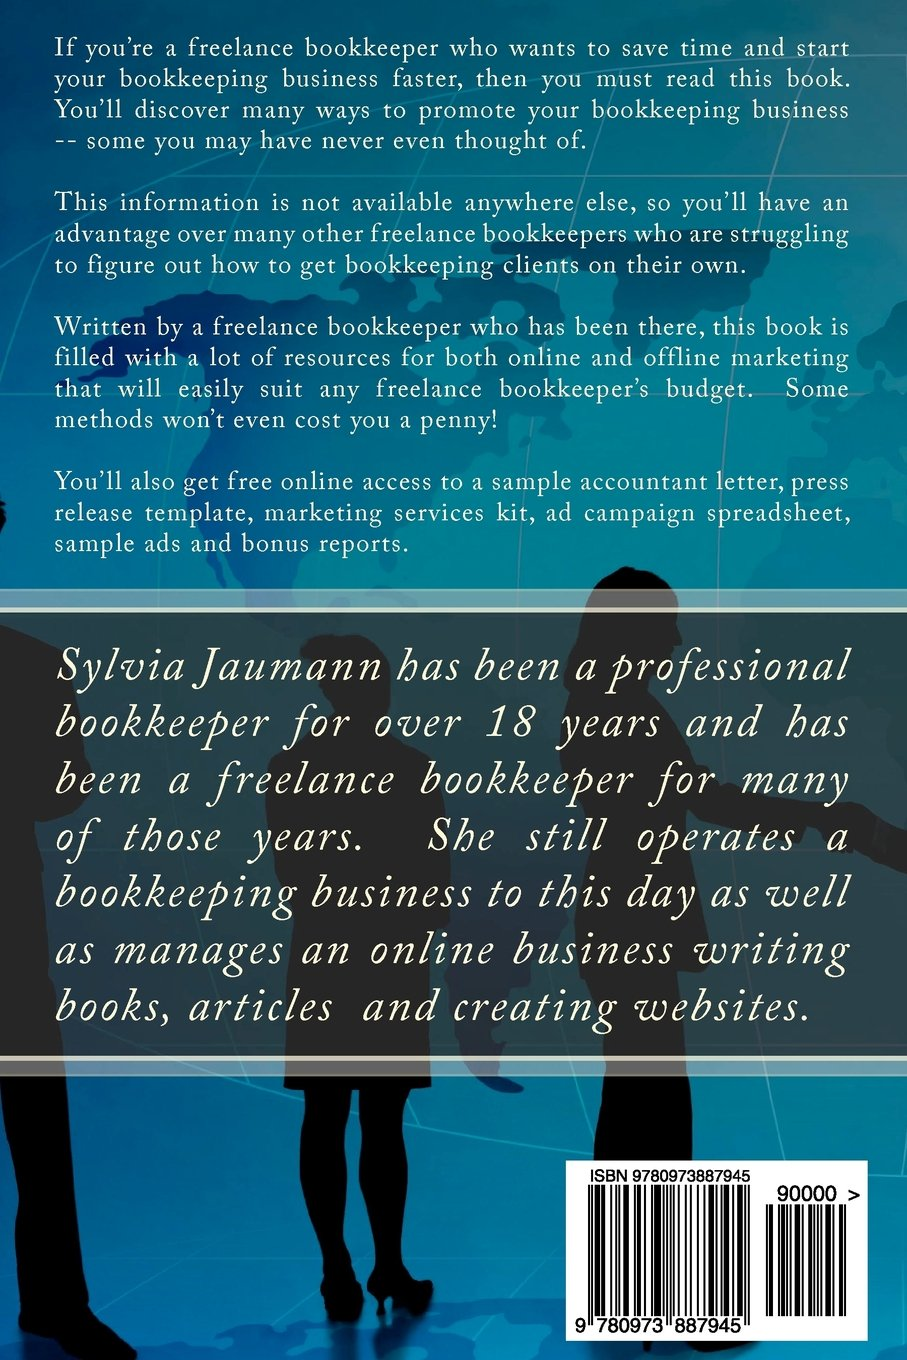 how to get bookkeeping clients quickly the bookkeeping business marketing guidebook amazoncouk sylvia jaumann 9780973887945 books